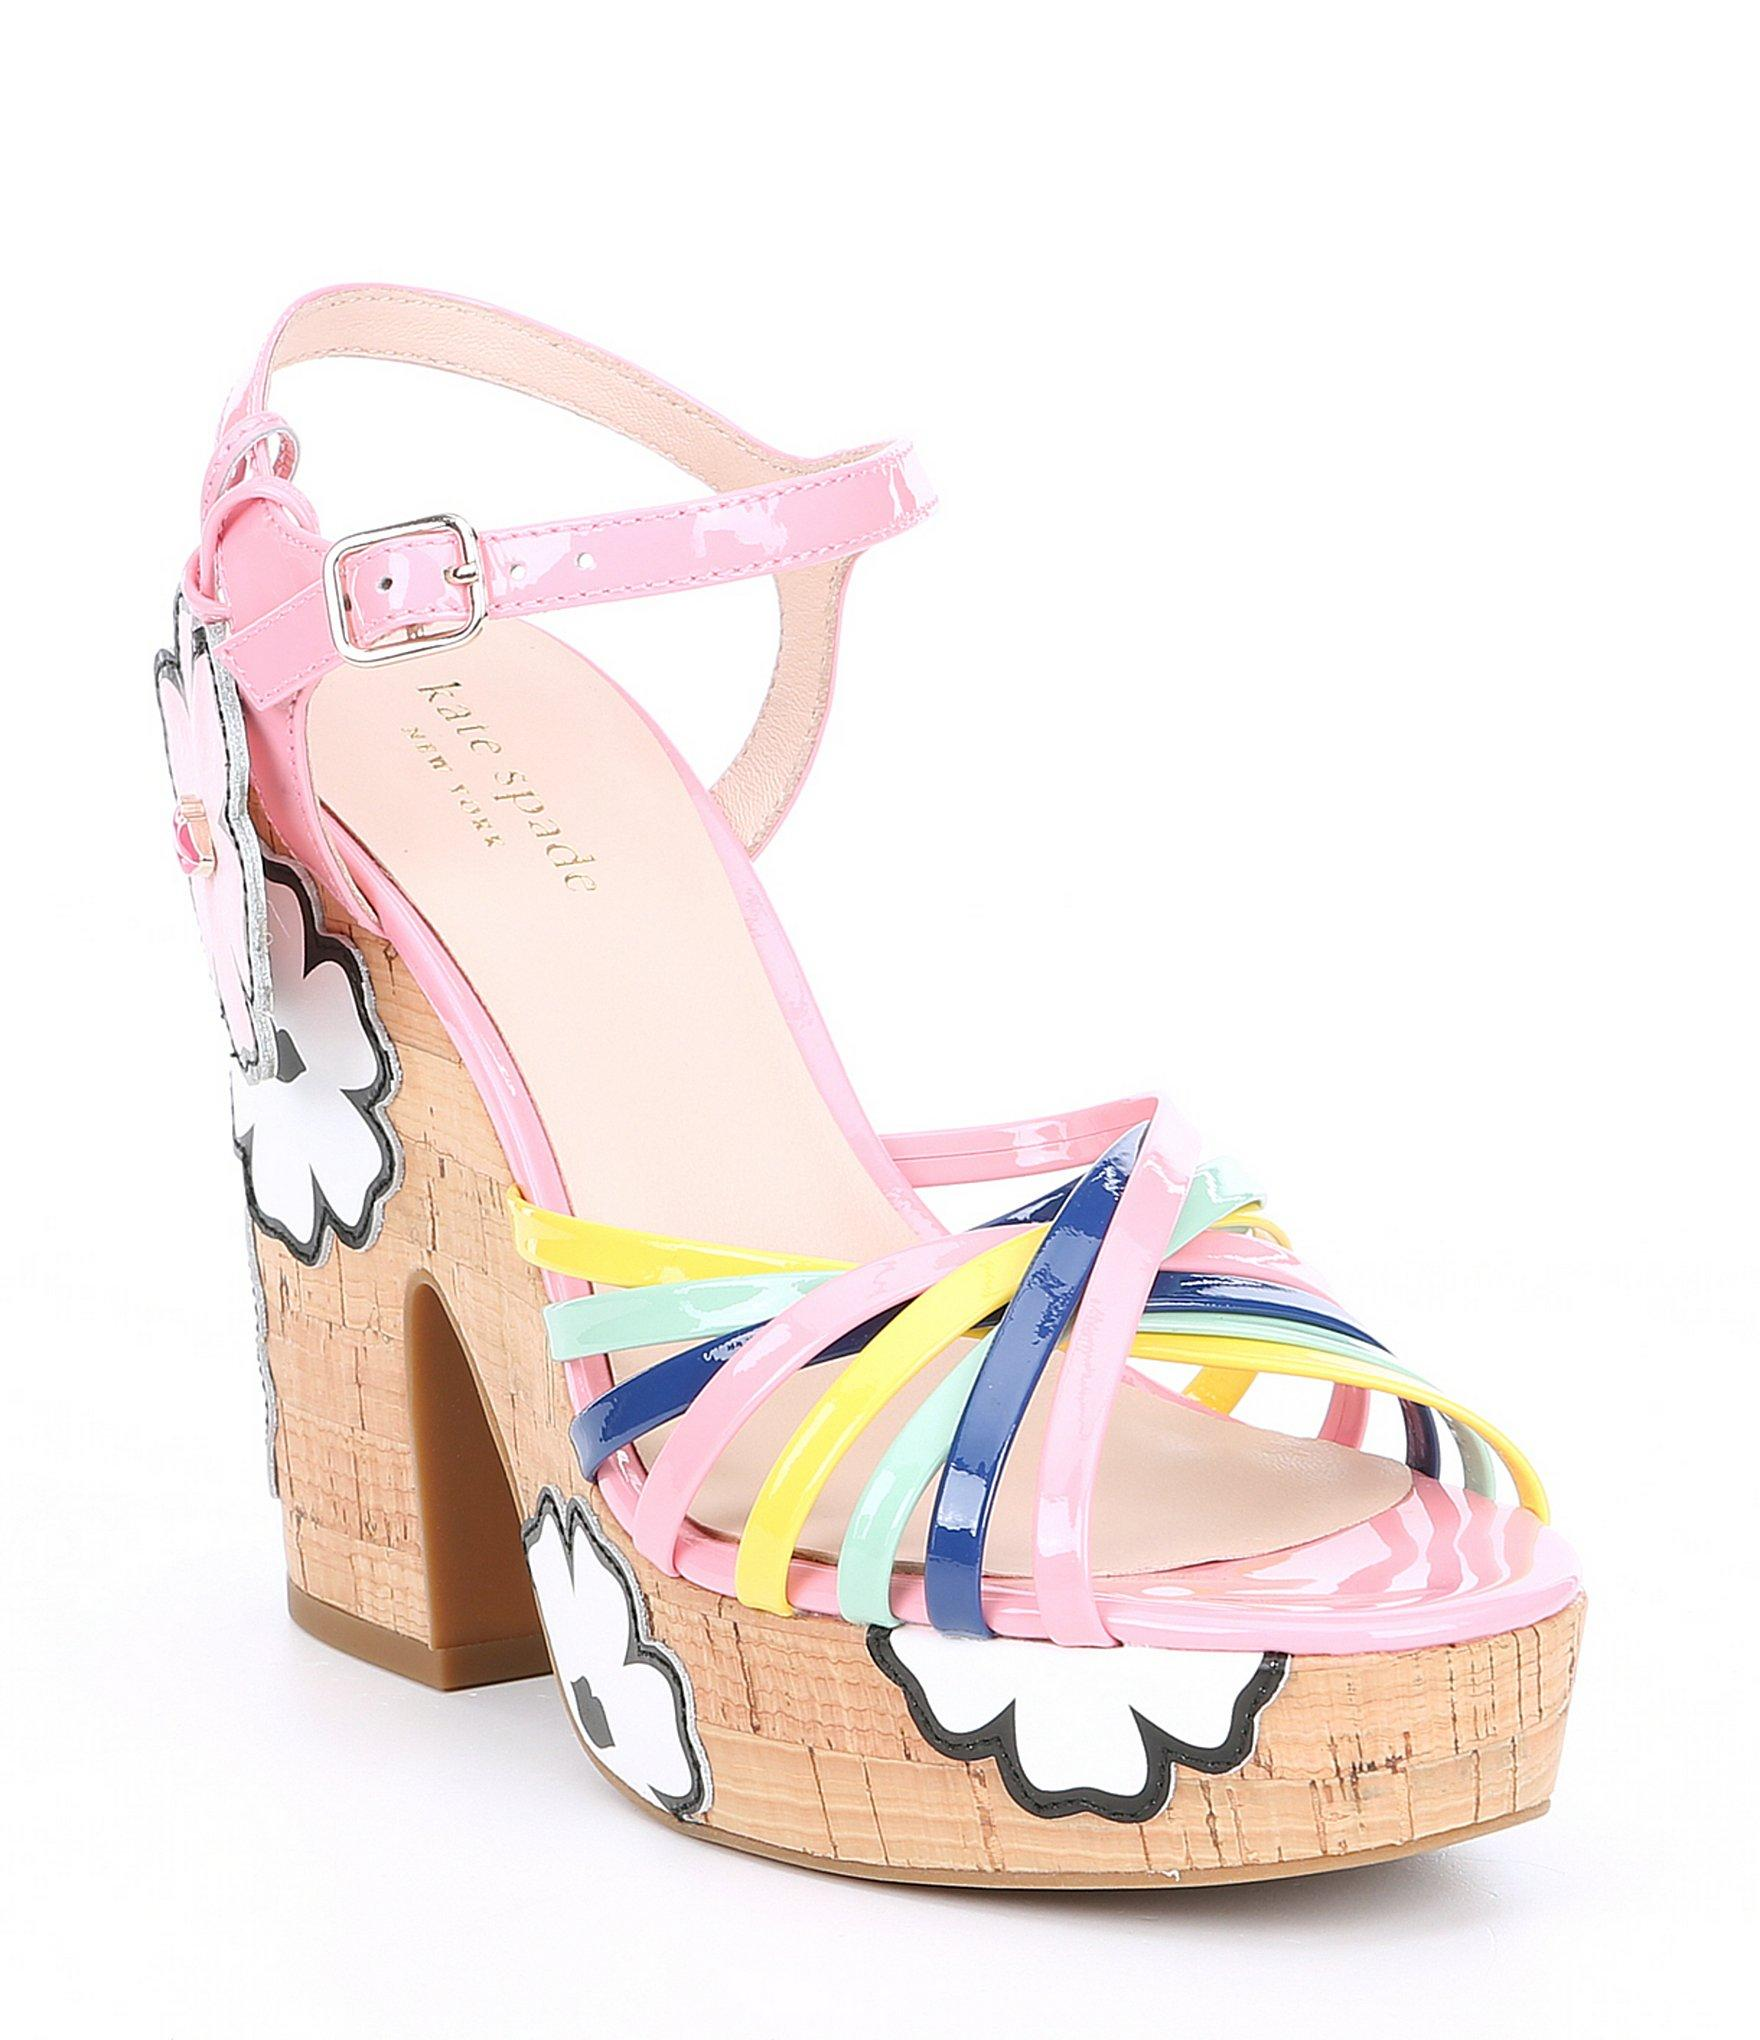 acfb605e208e Kate Spade - Pink Gerry Patent Leather Platform Sandals - Lyst. View  fullscreen